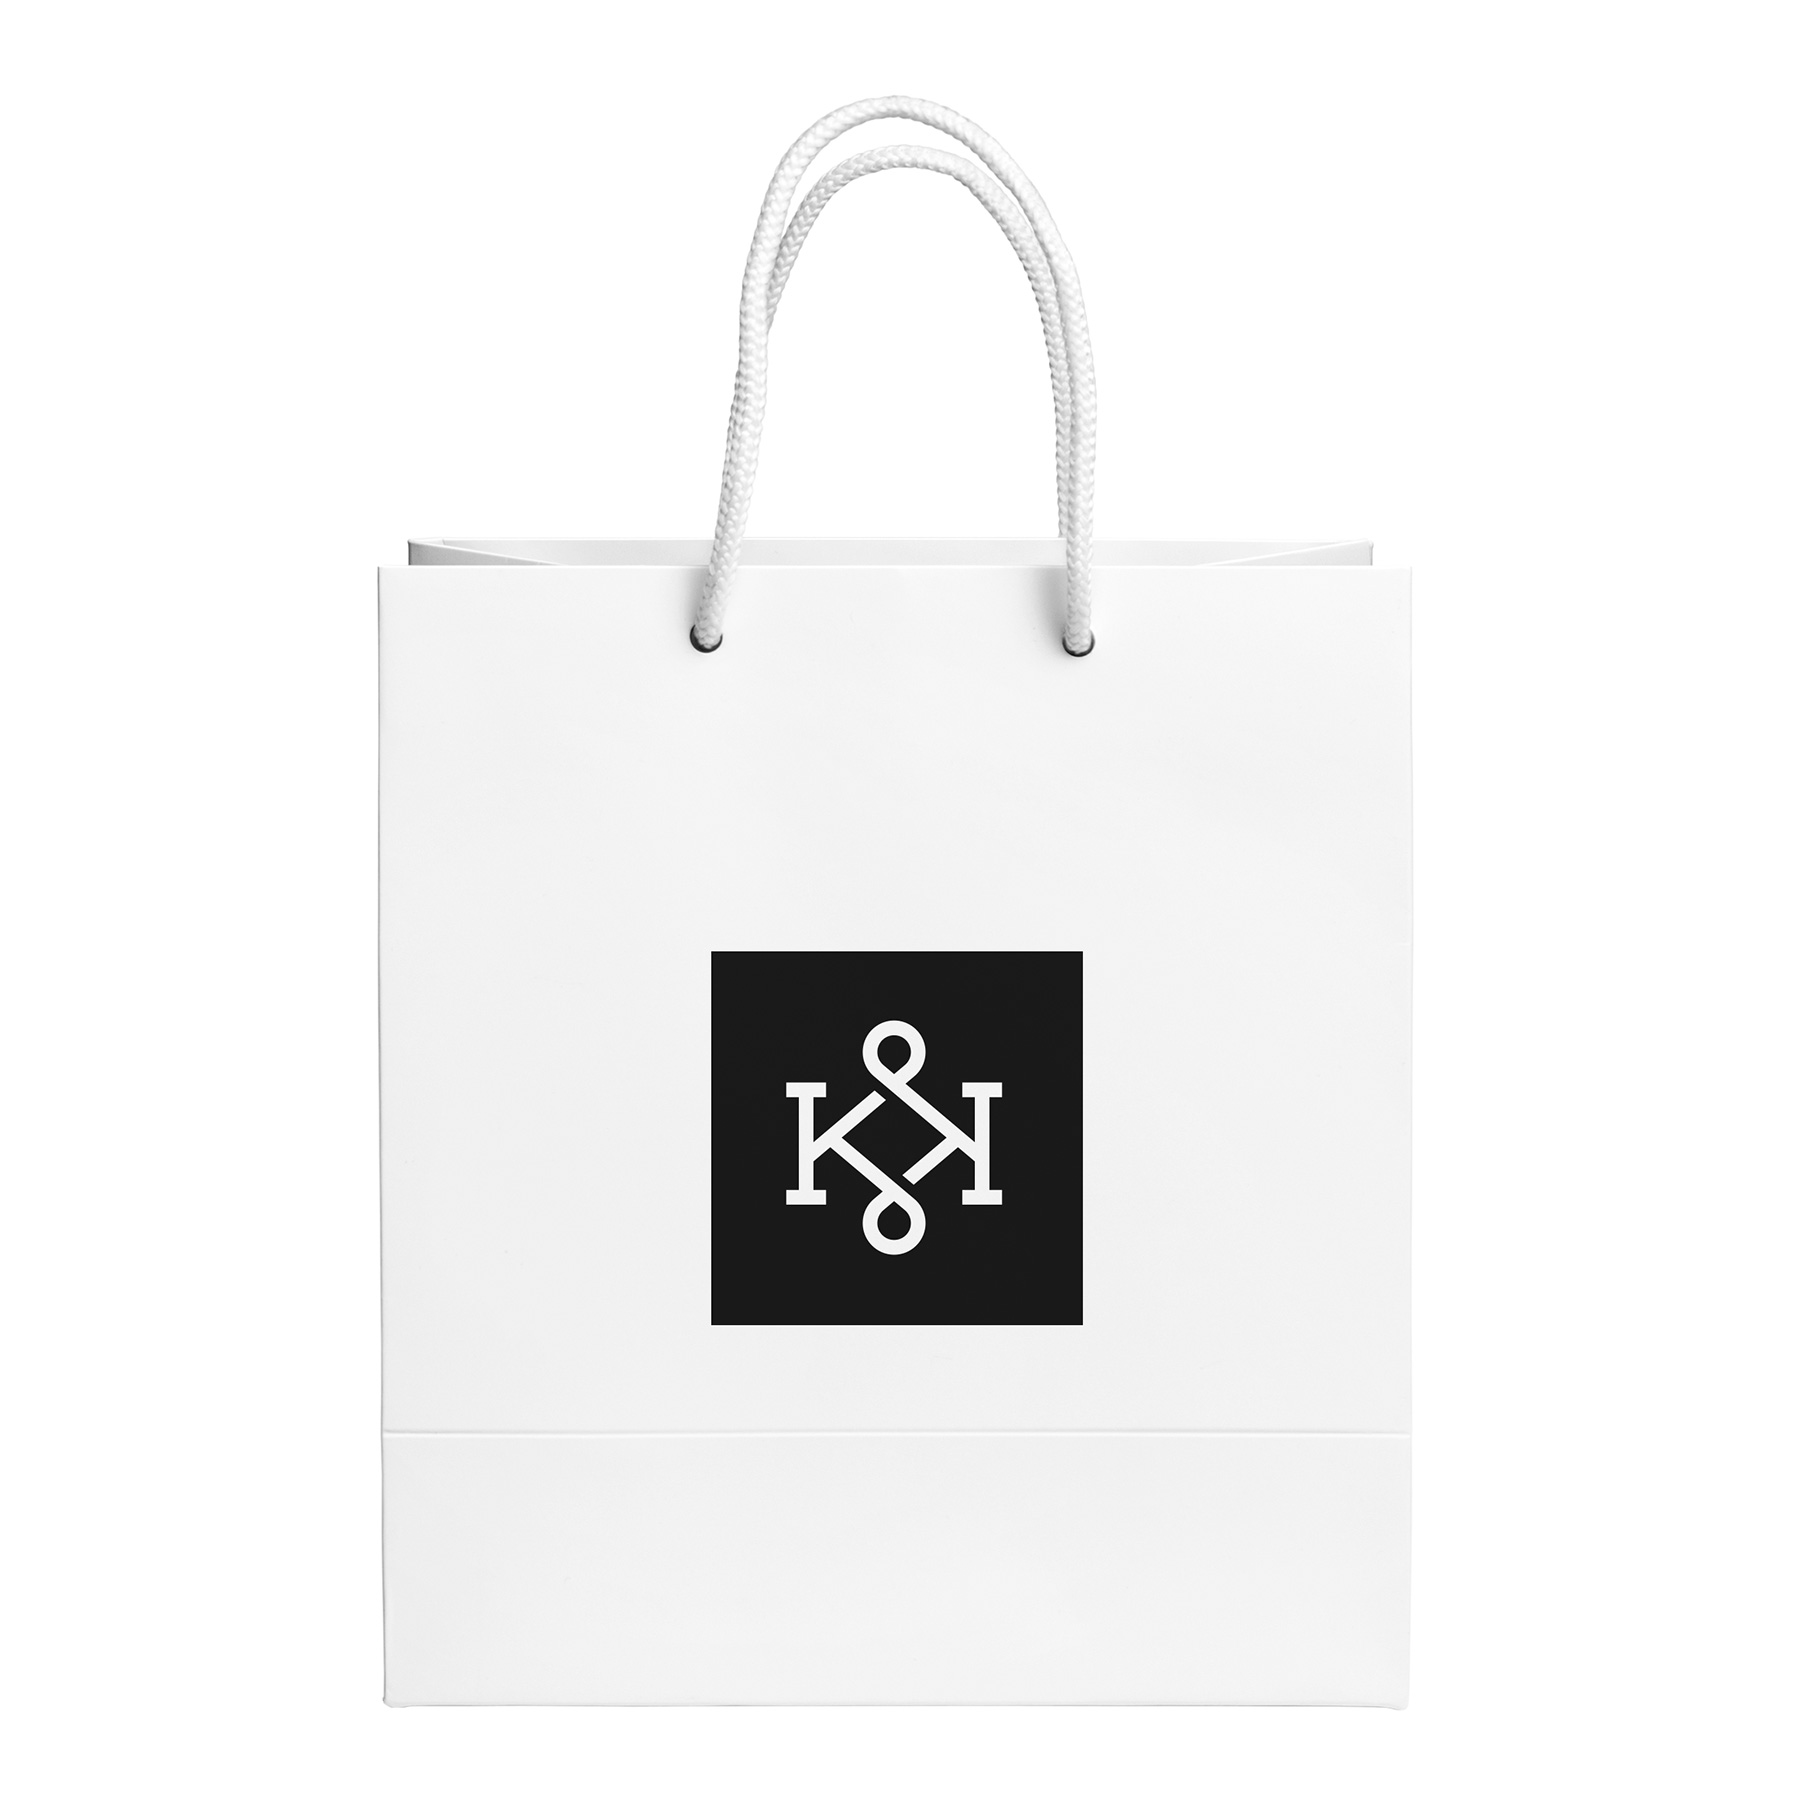 kk-shopping-bag2